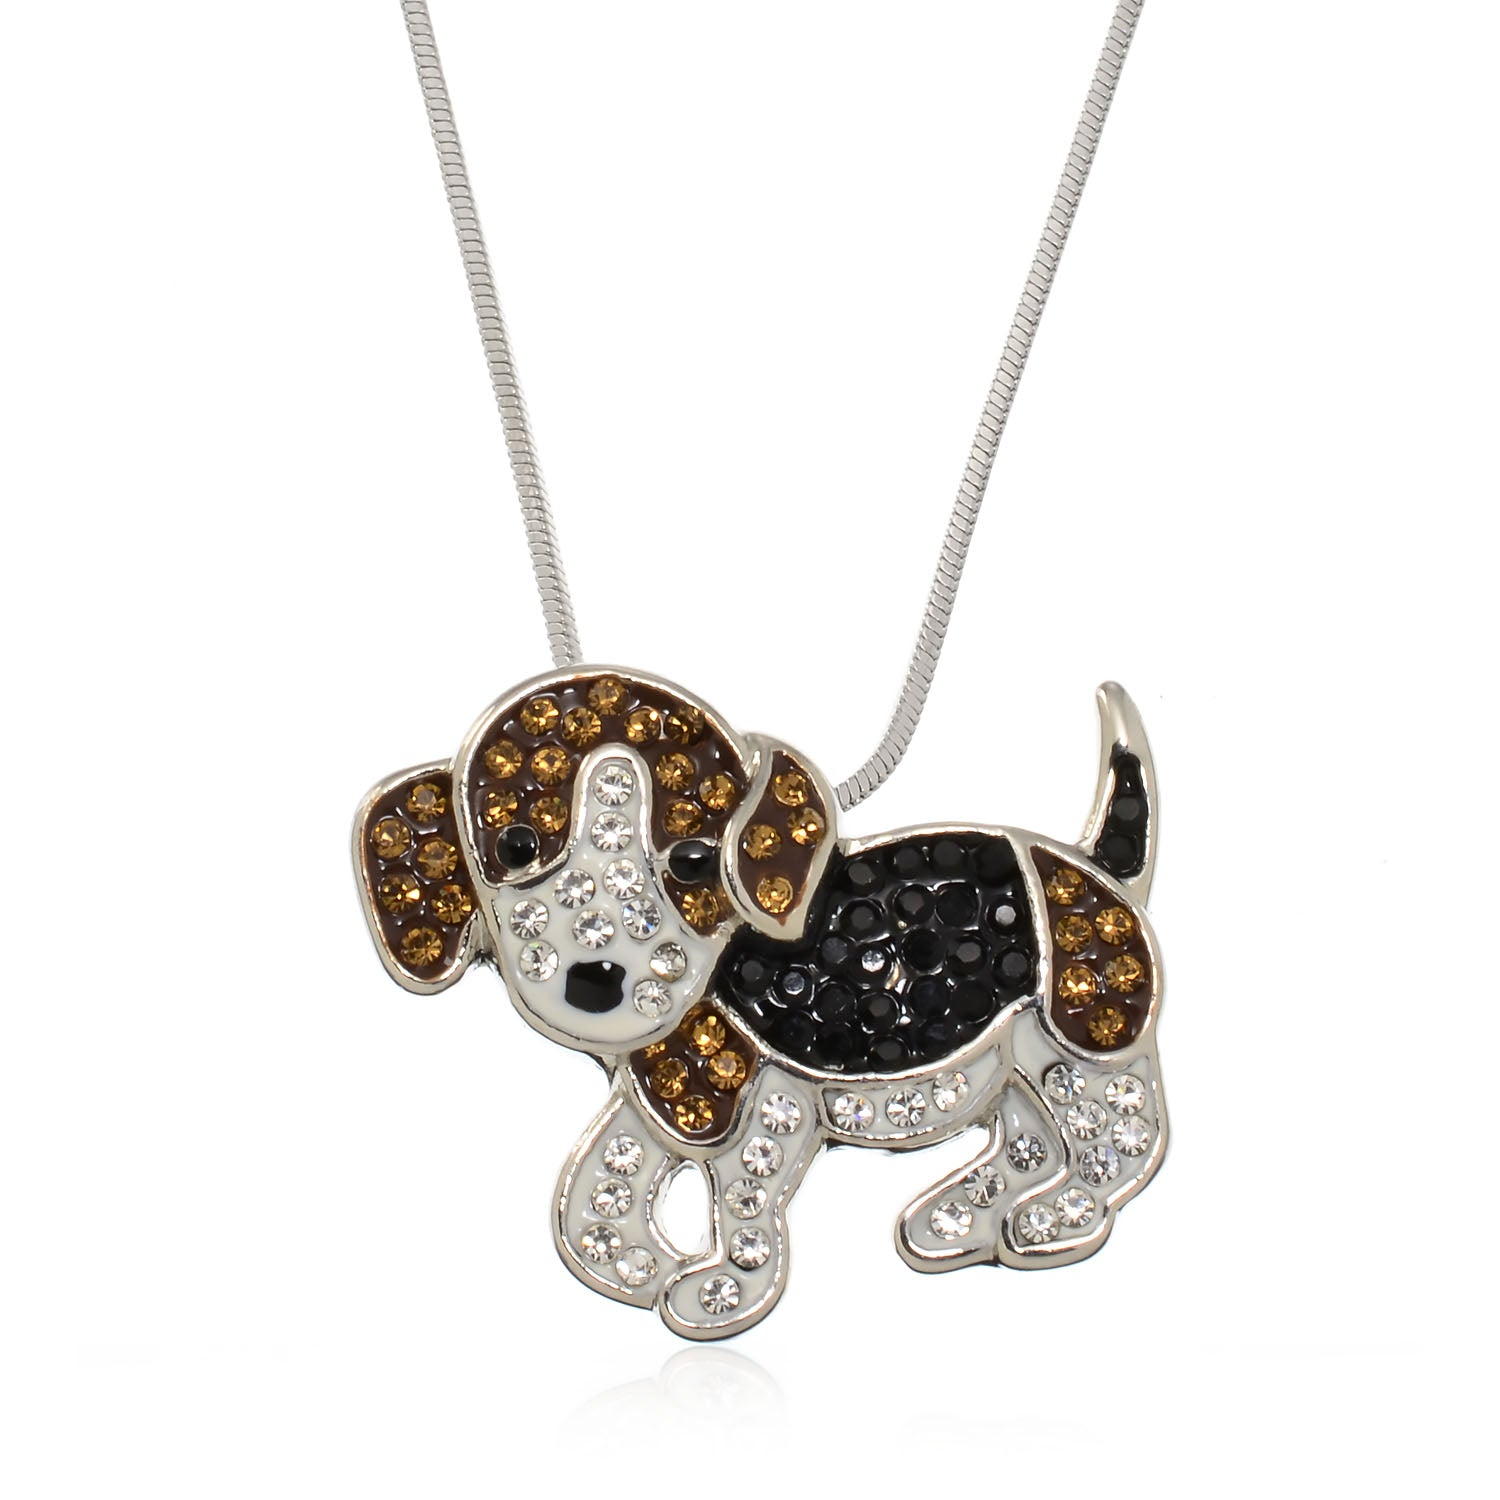 Pammyj brown and black crystal puppy dog pendant charm necklace pammyj brown and black crystal puppy dog pendant charm necklace 175 audiocablefo